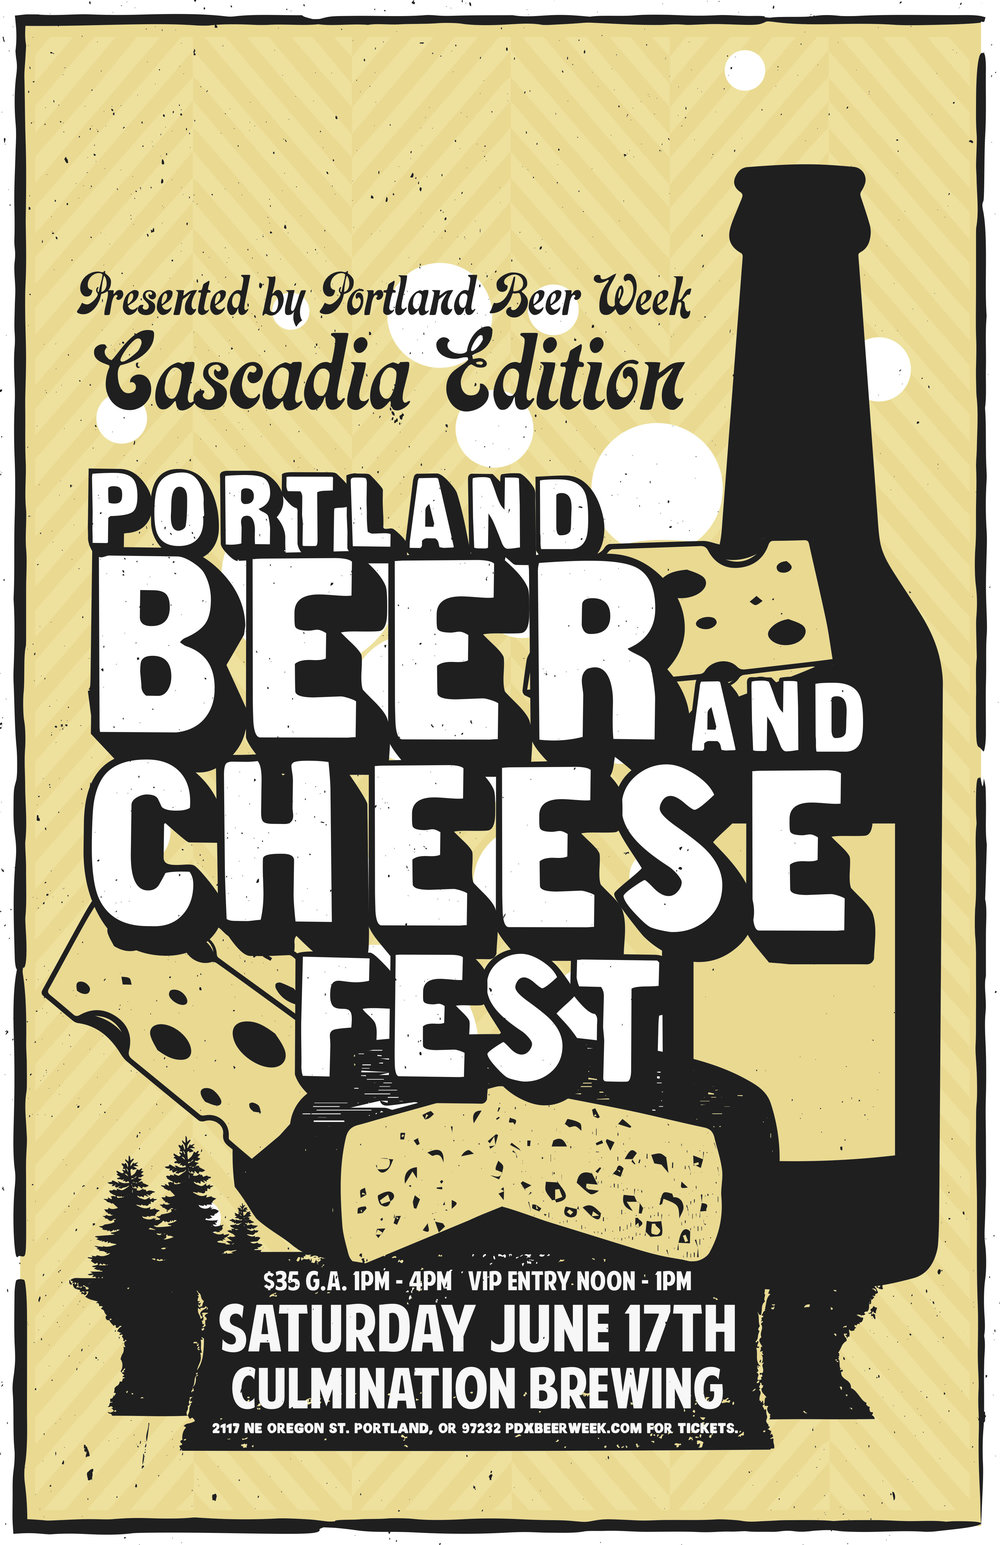 image courtesy Portland Beer and Cheese Fest